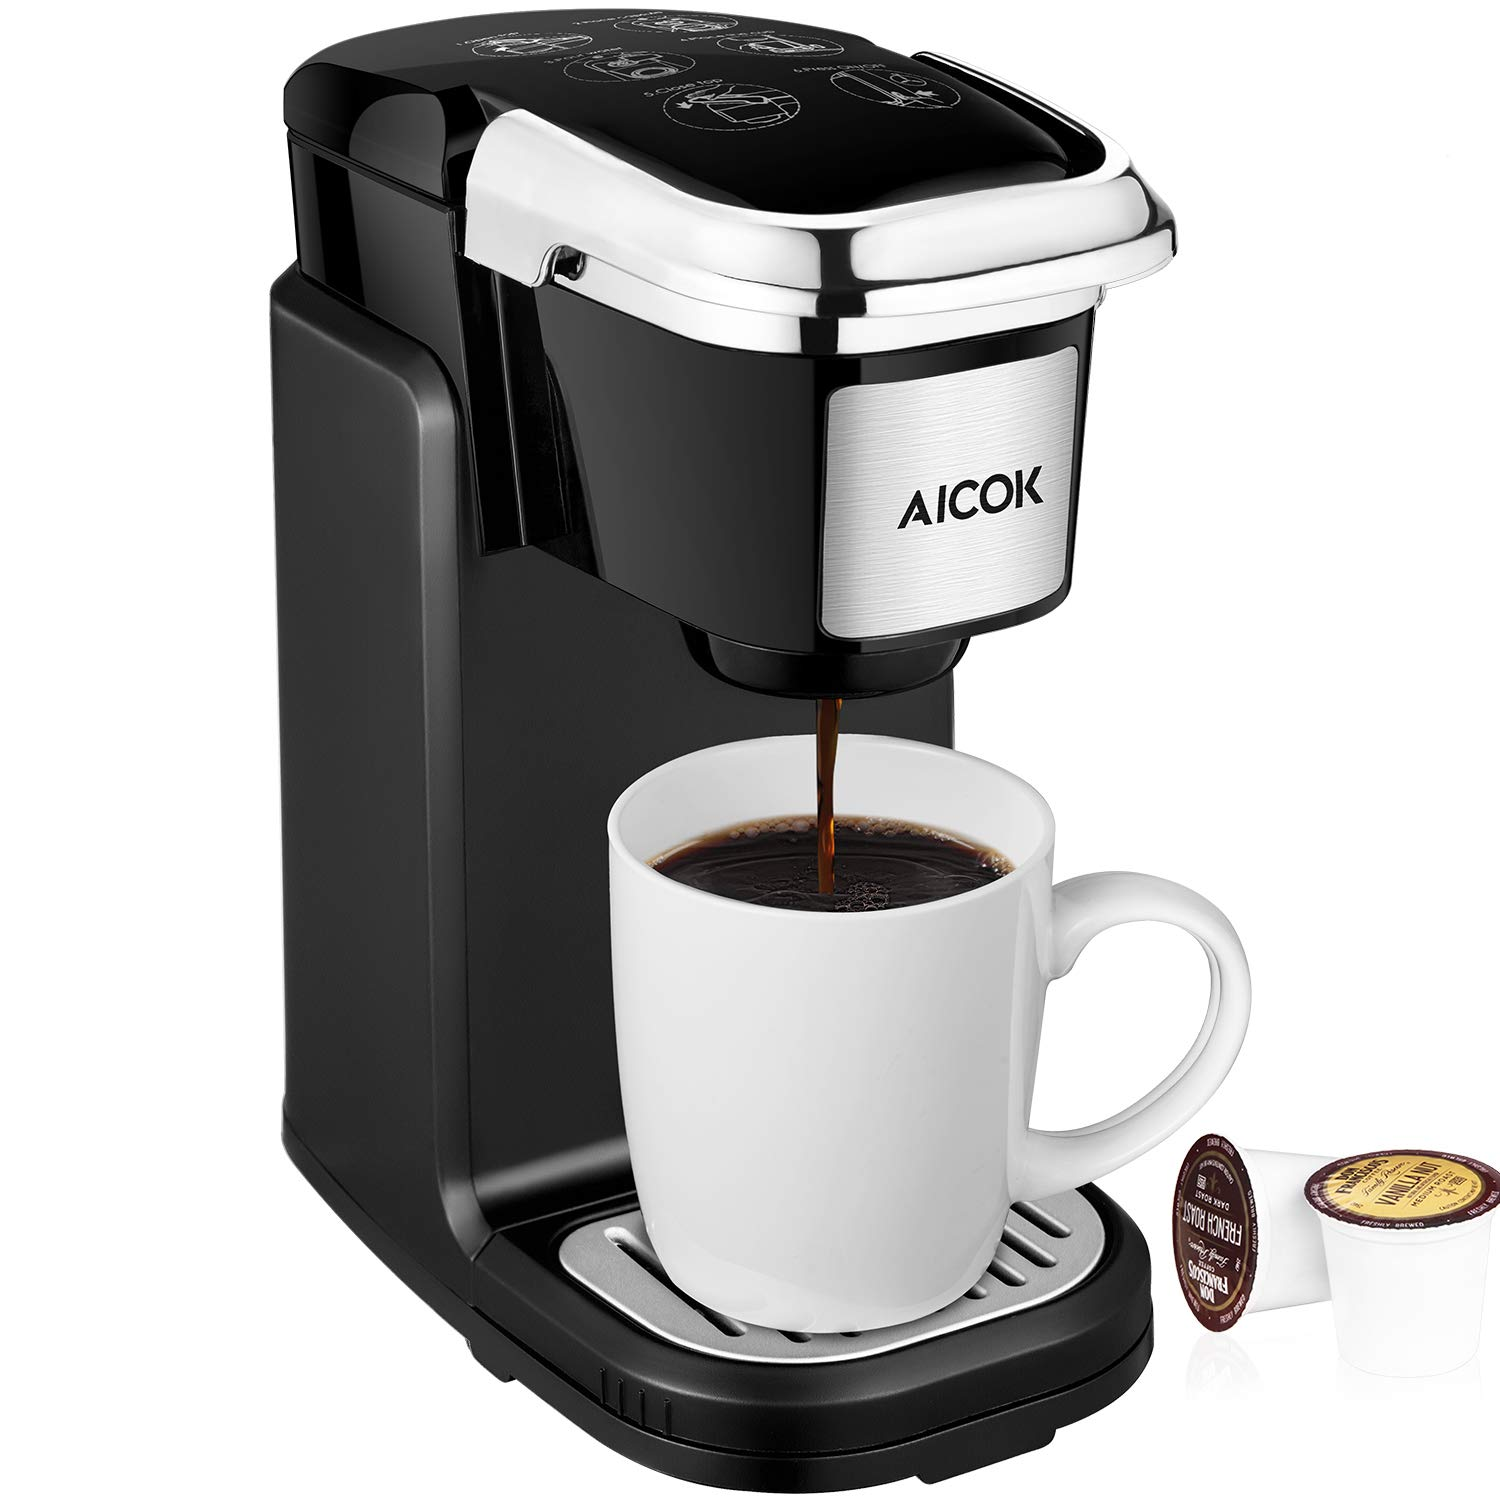 AICOK Single Cup Coffee Maker, Single Serve Coffee Brewer with Removable Cover for Most Single Cup Pods Including K-Cup pods, Quick Brew Technology, 800W, Black